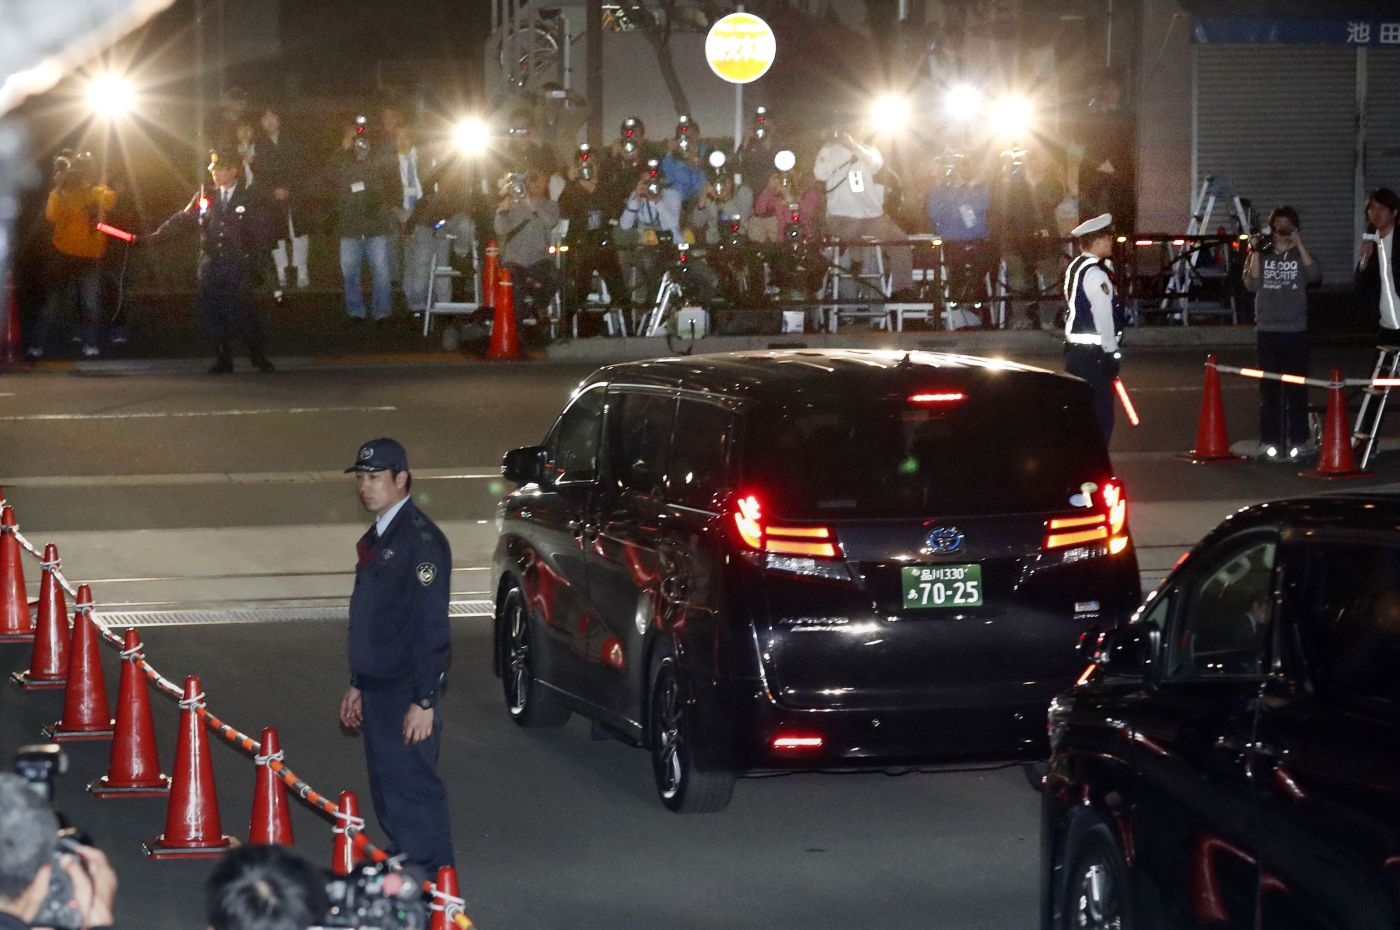 Japan Carlos Ghosn Released on Bail Once More 010